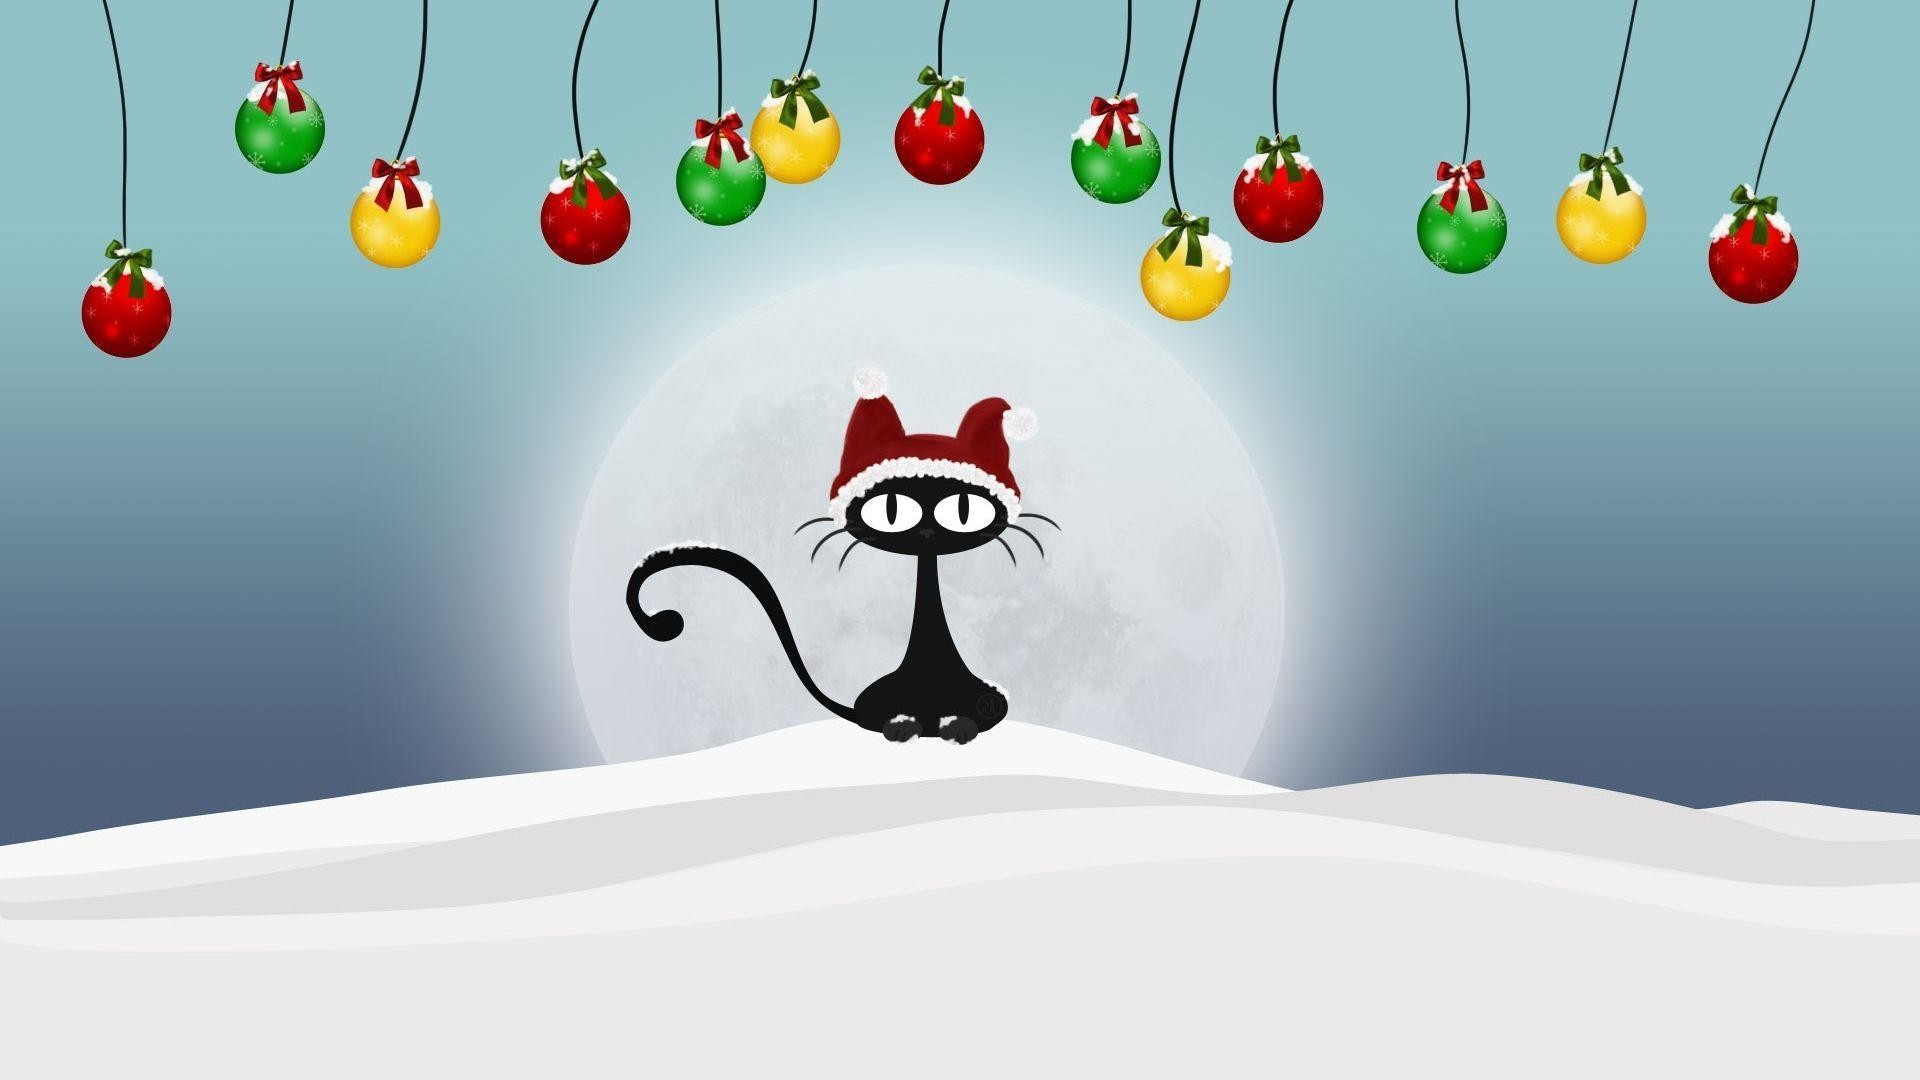 Res: 1920x1080, Funny Christmas Hd Background Wallpaper 31 HD Wallpapers .